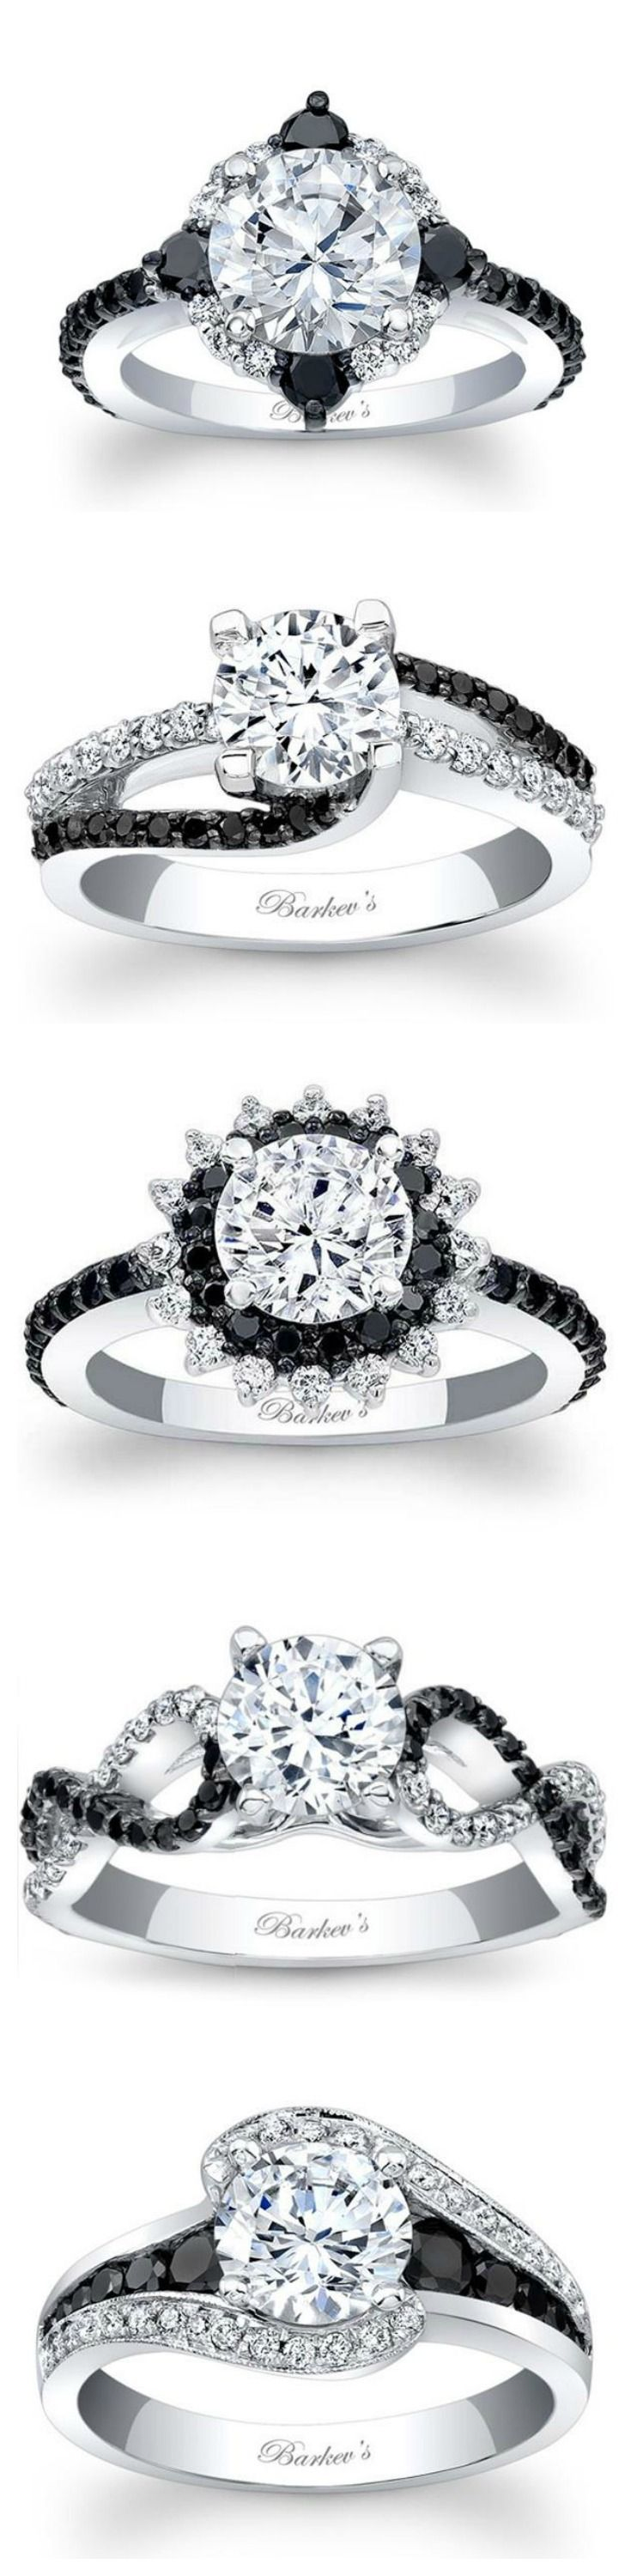 Barkev's Black Diamond Engagement Rings from Ben Garelick Jewelers